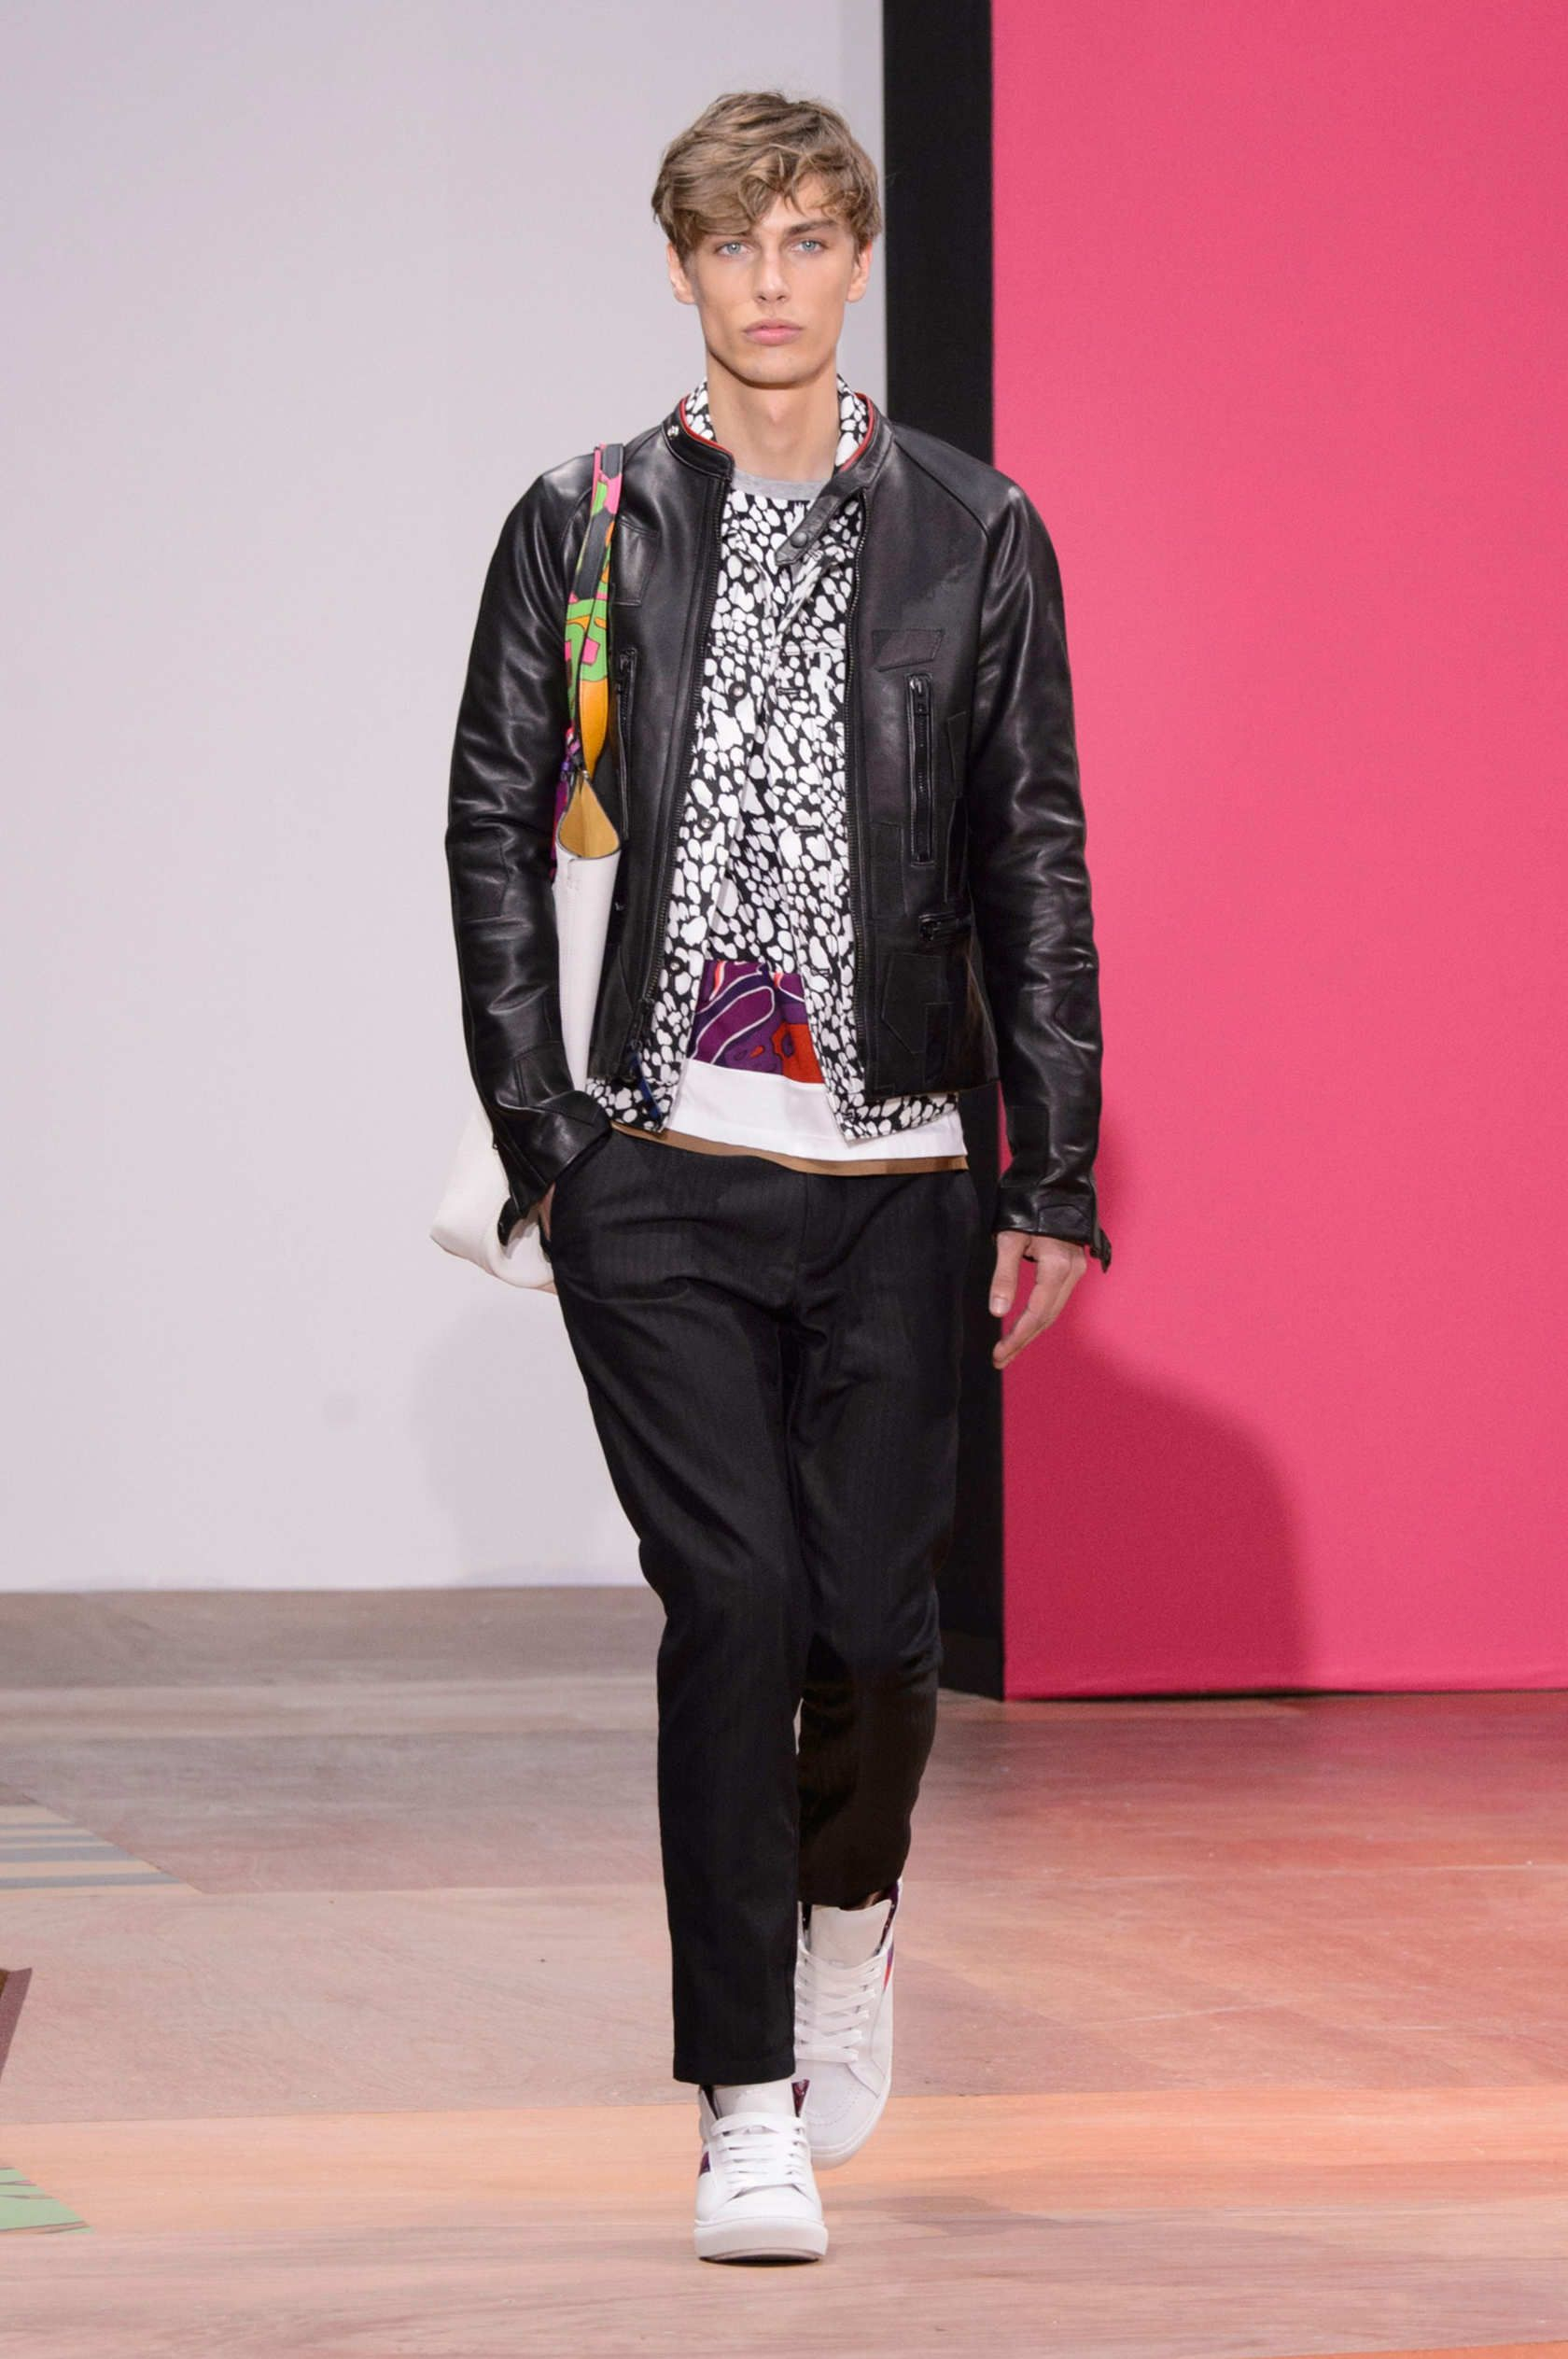 Pin on Mans runway collection 20.